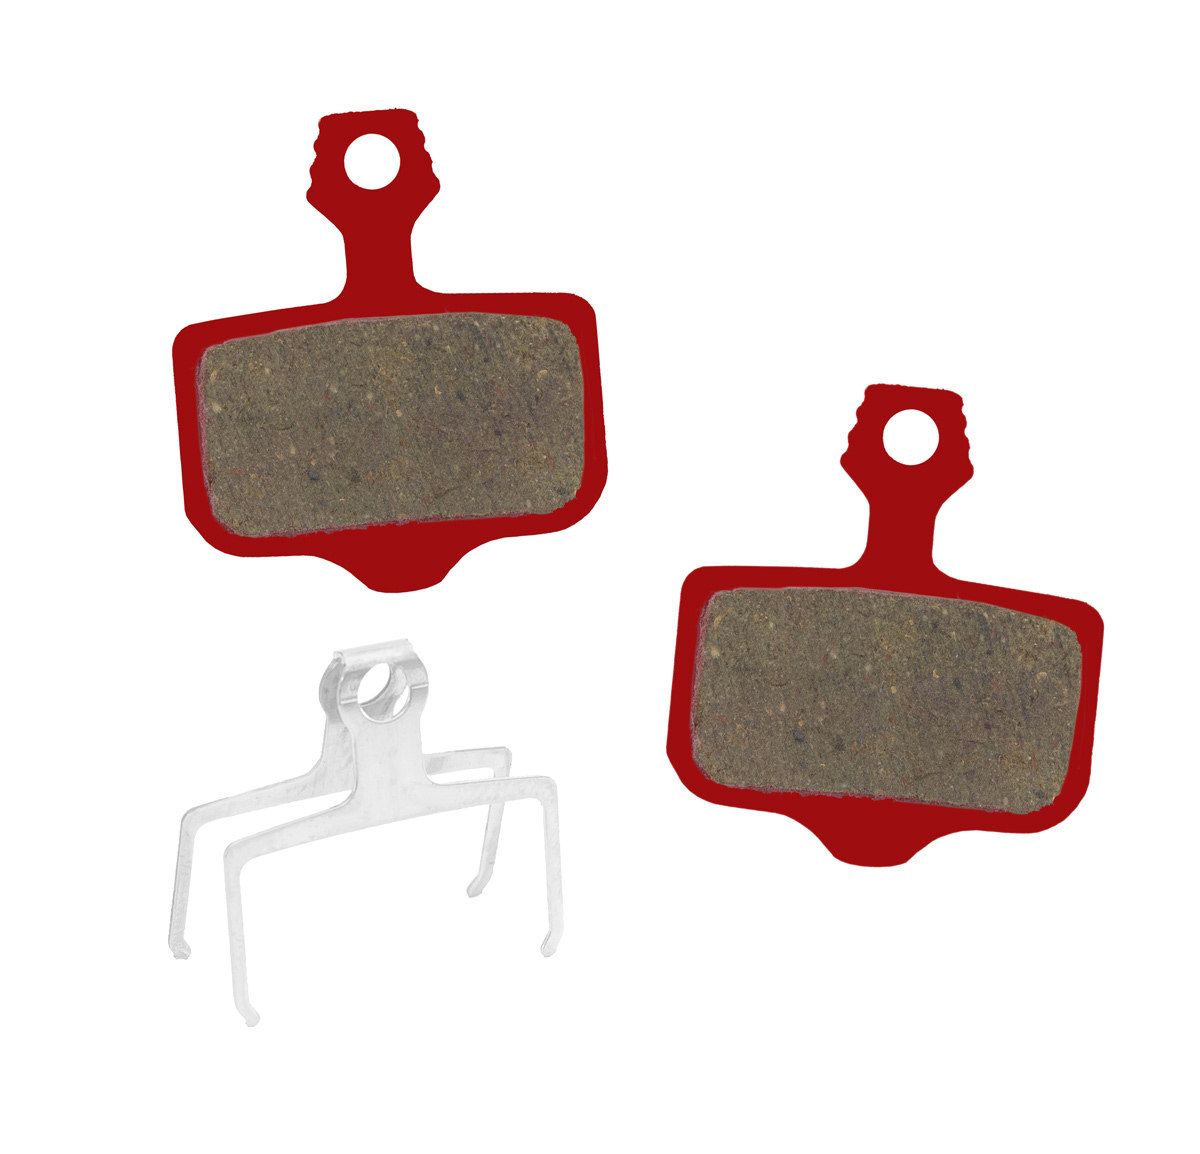 Trivio Organic Brake Pad for Avid Elixir Disc Brake